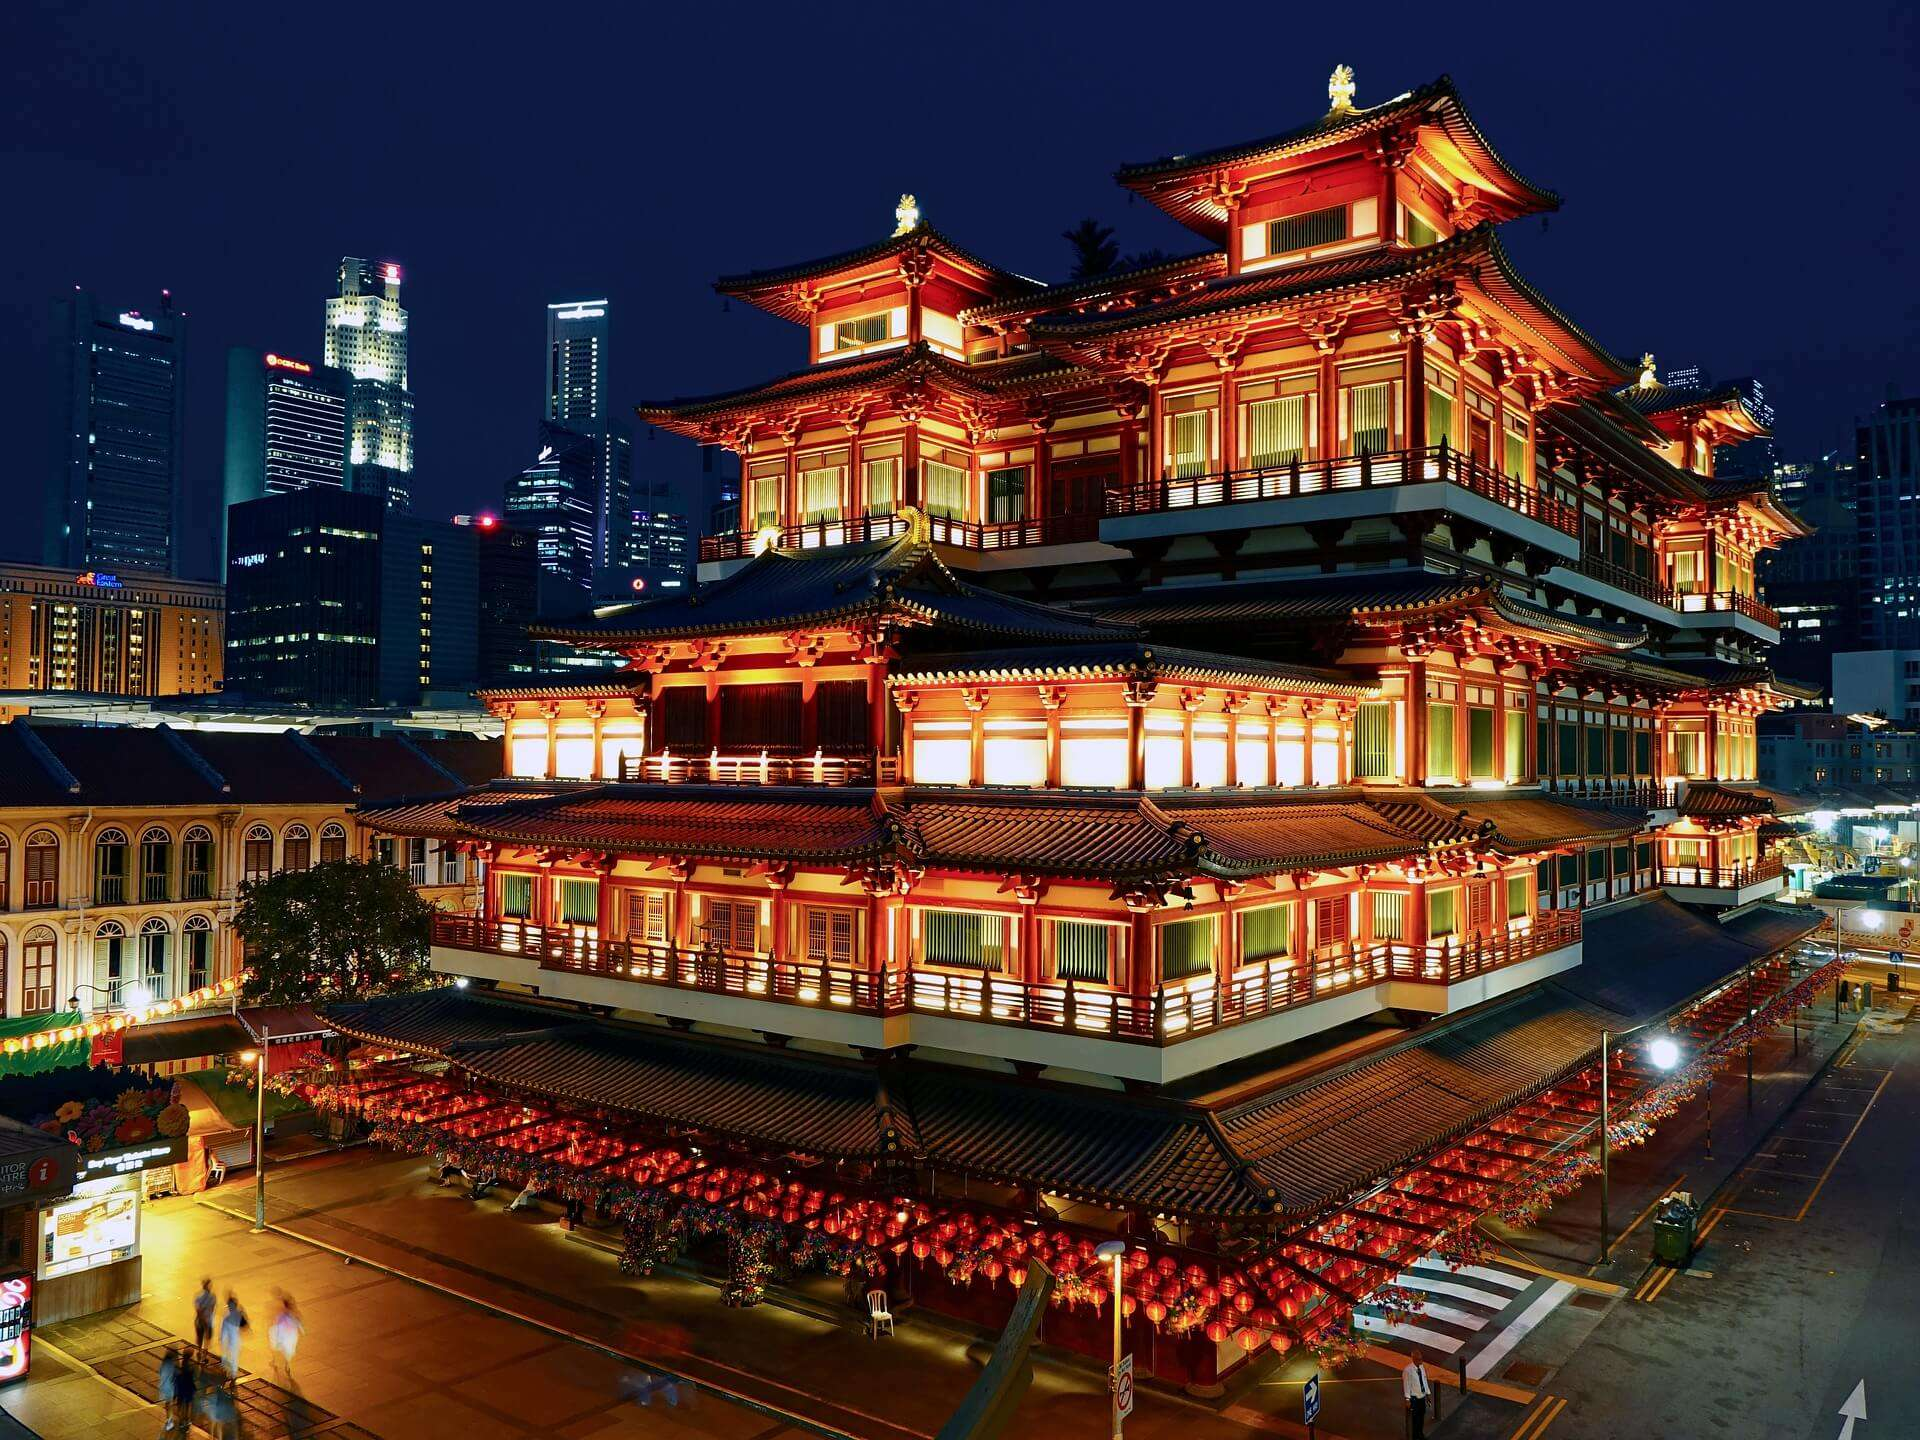 a Chinese style building well lit at night